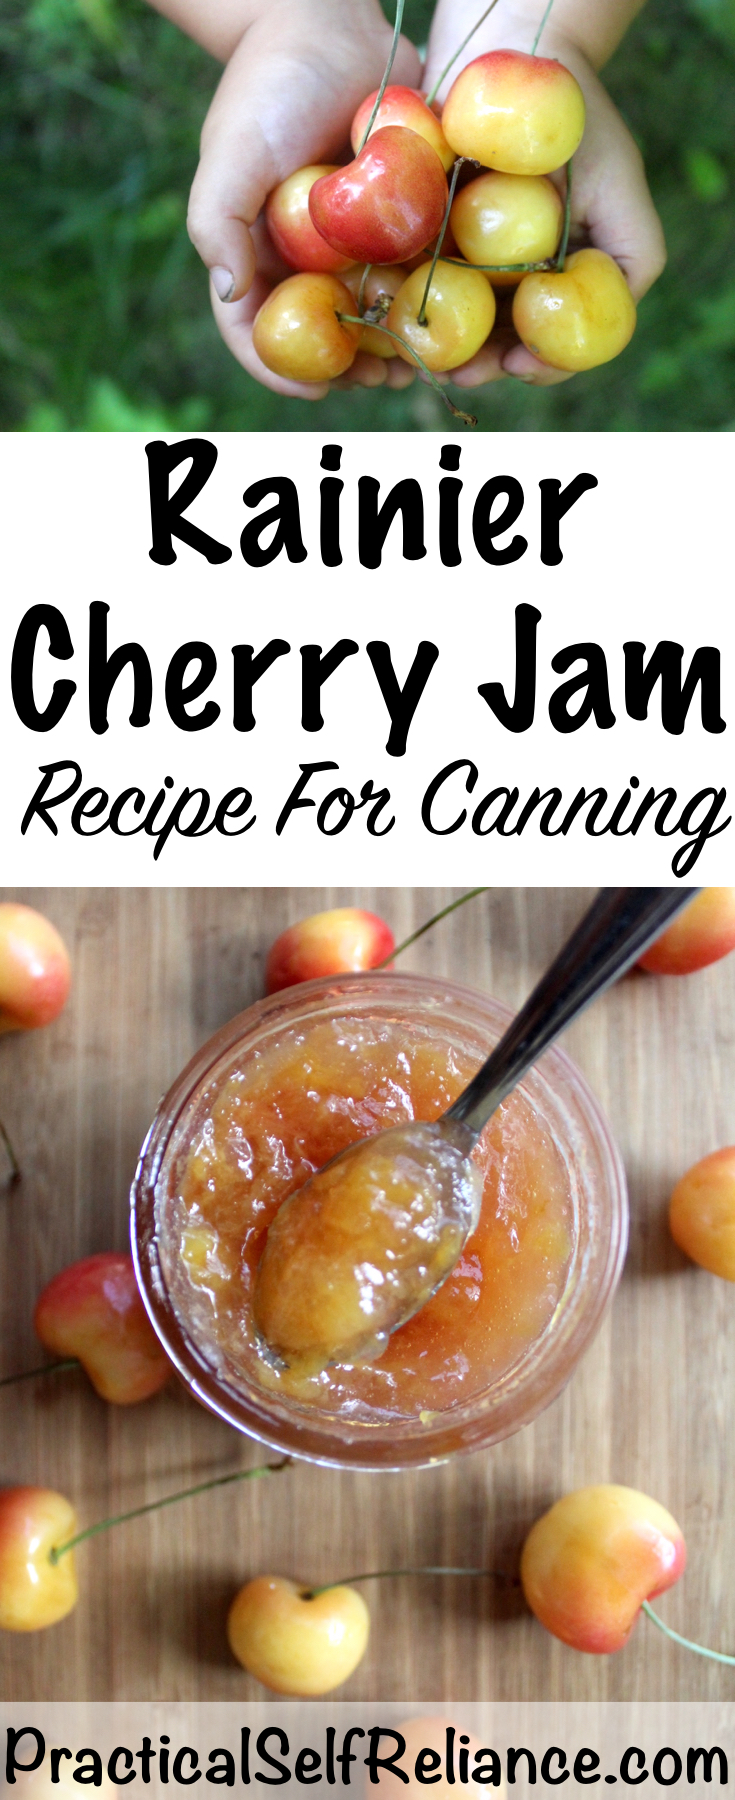 Rainier Cherry Jam Recipe For Canning